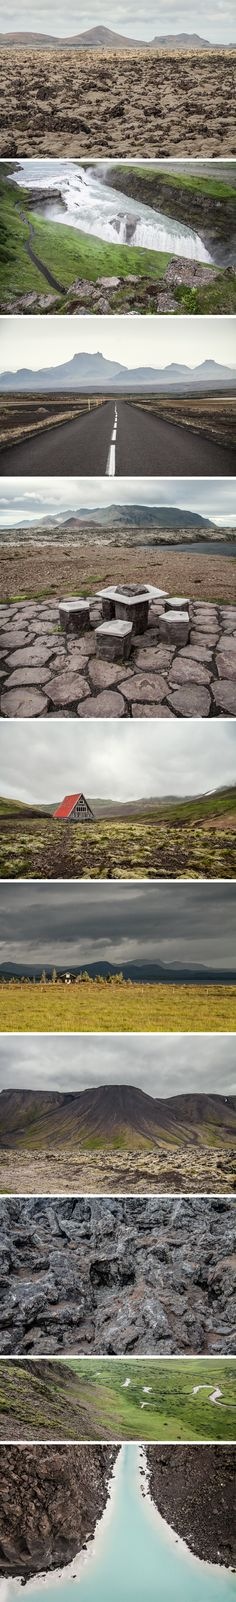 Iceland Free Photos Vol.1 | GraphicBurger